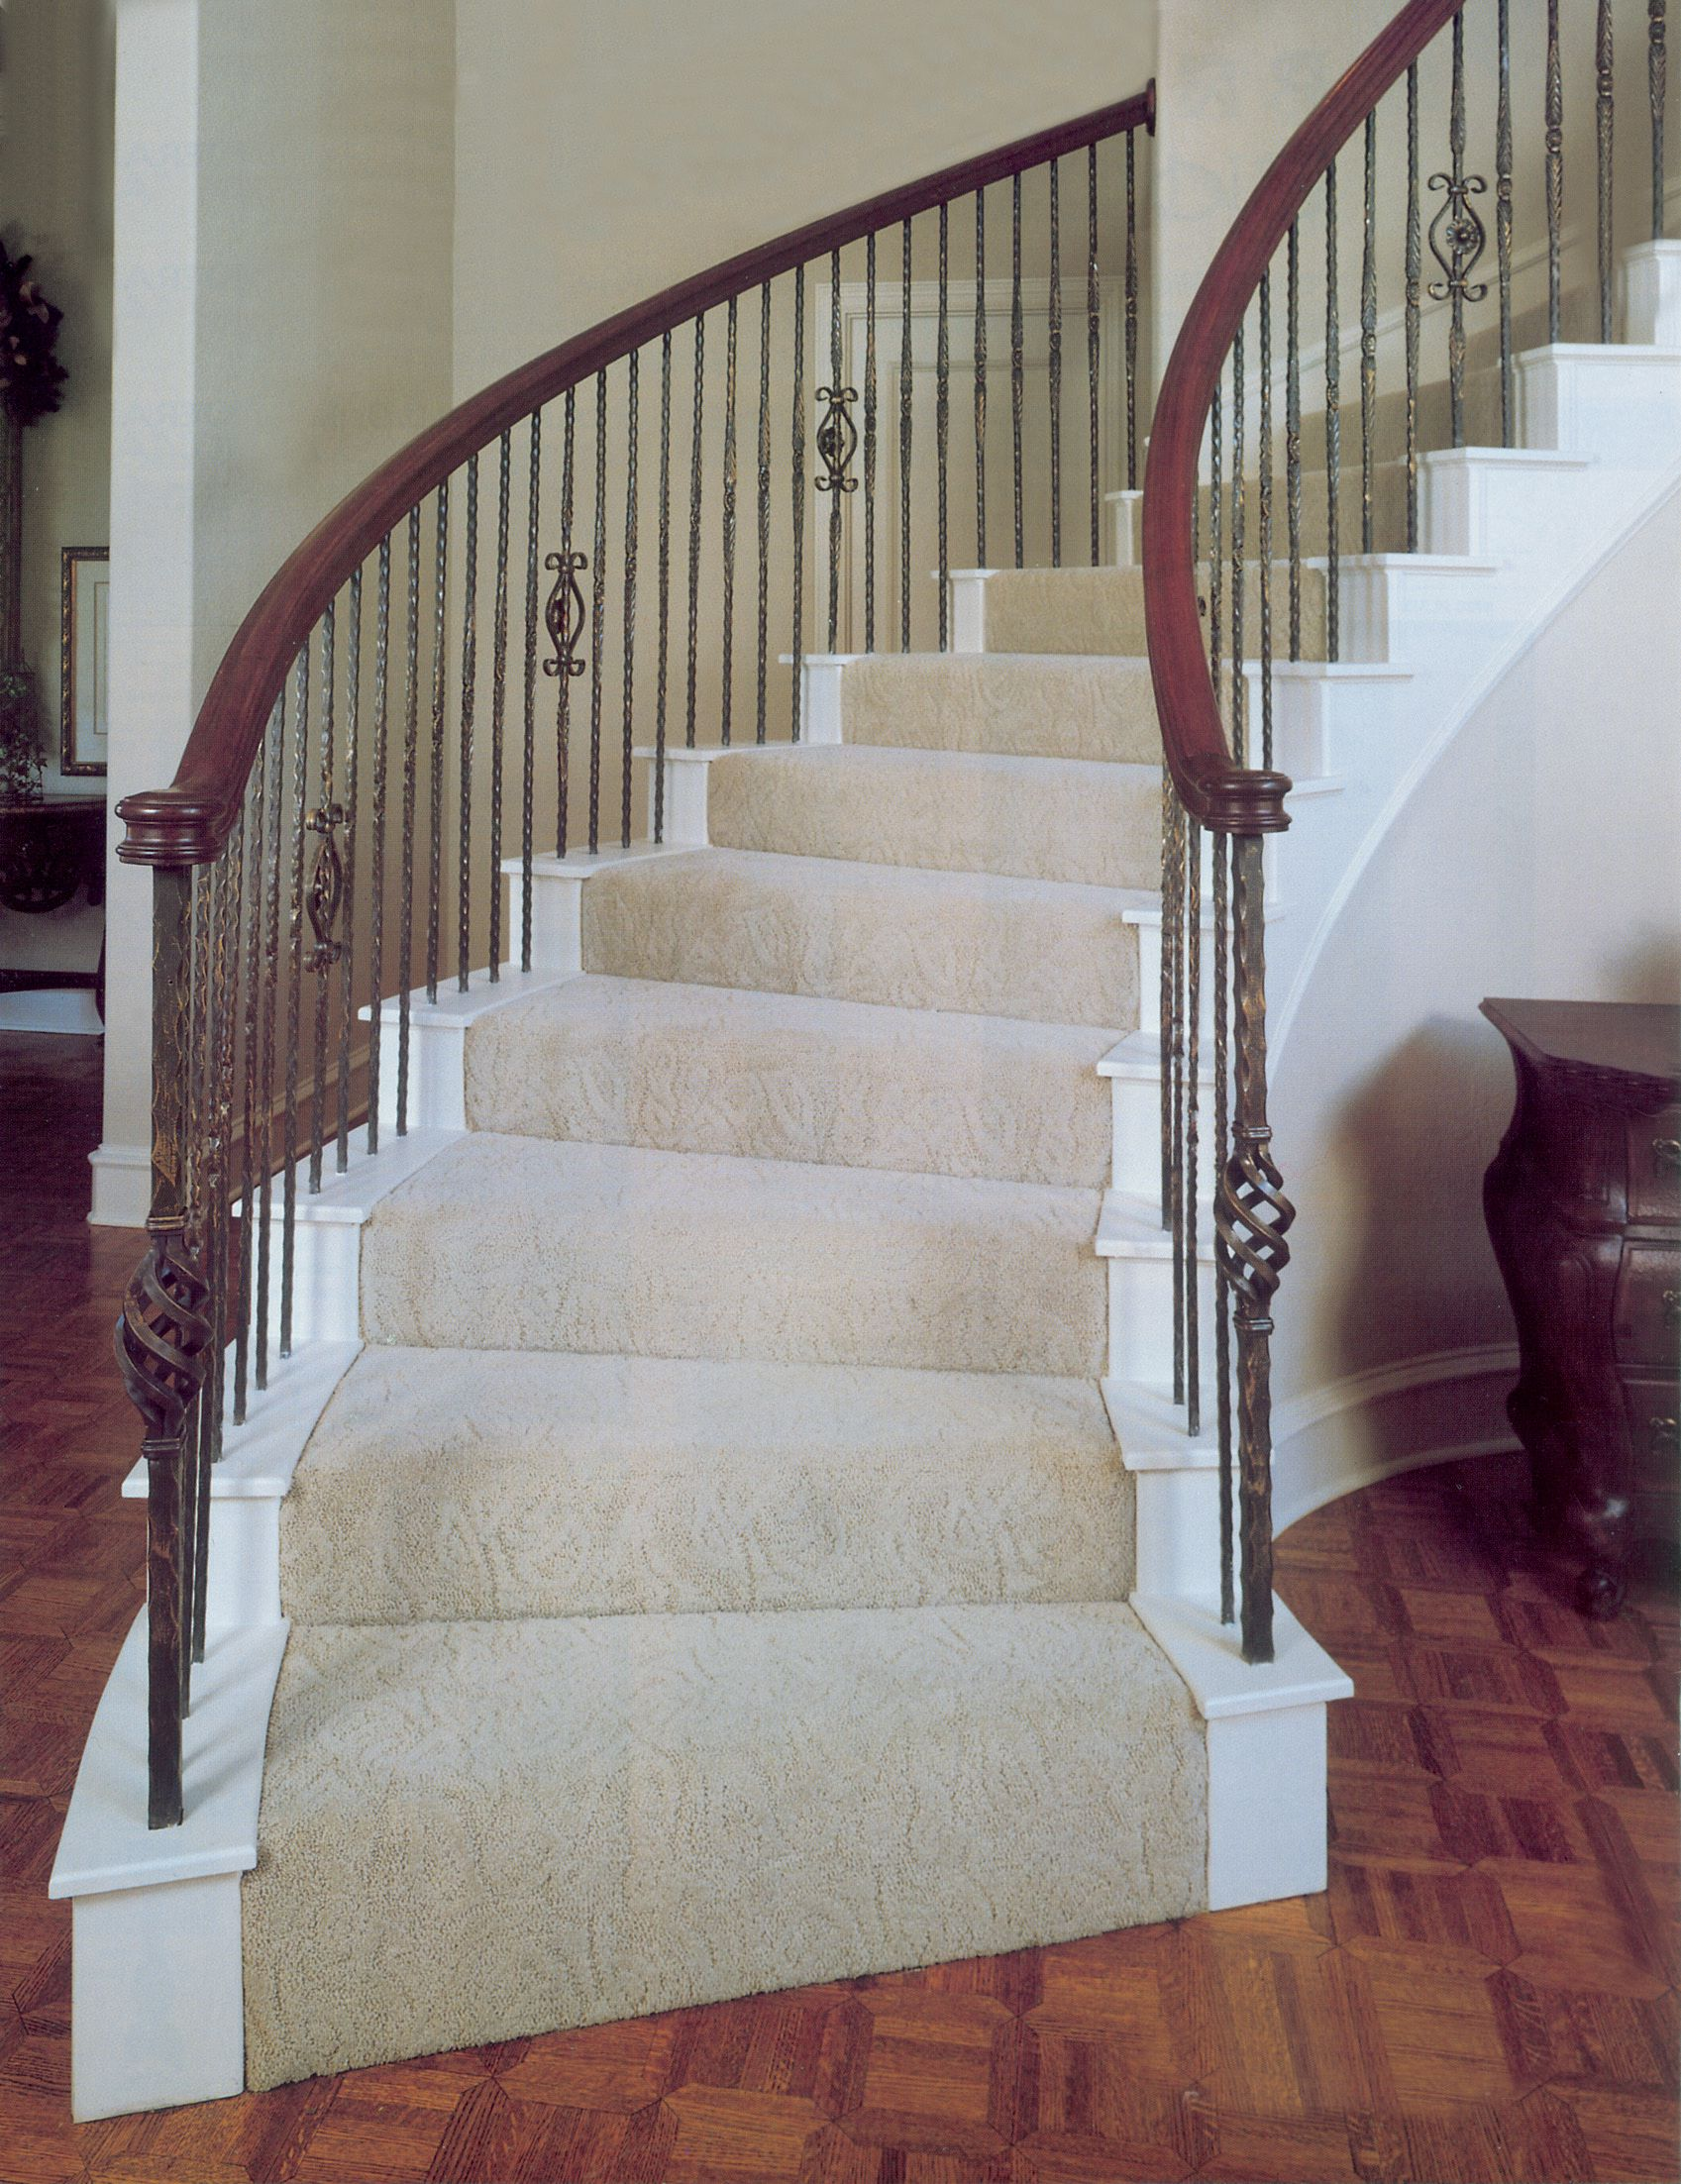 Best Another Example Of Our Powder Coated Balusters And Newels Available In A Variety Of Styles 400 x 300